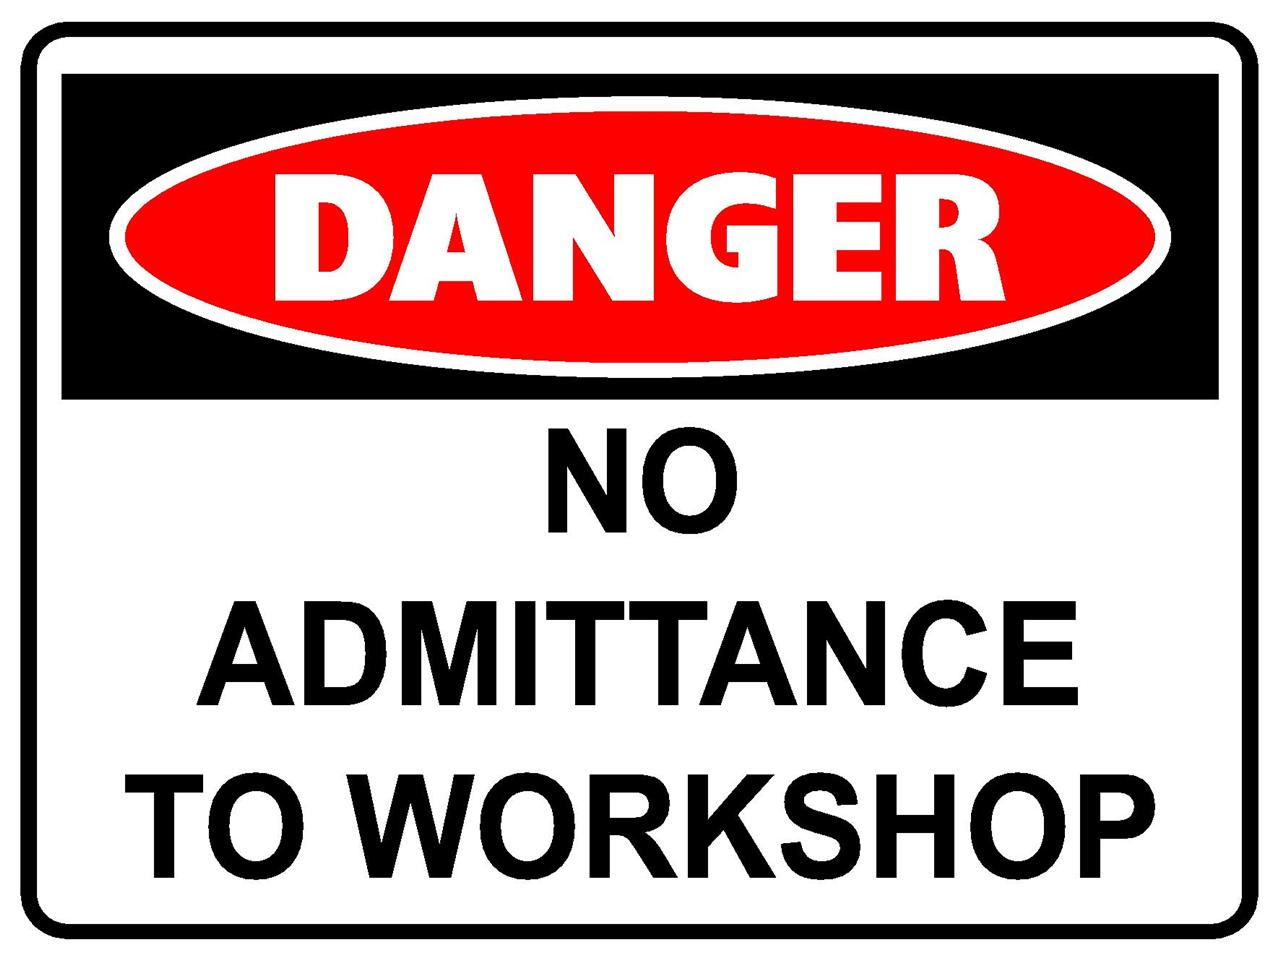 danger no admittance to workshop metal sign 300 x 225mm safety danger sign ebay. Black Bedroom Furniture Sets. Home Design Ideas